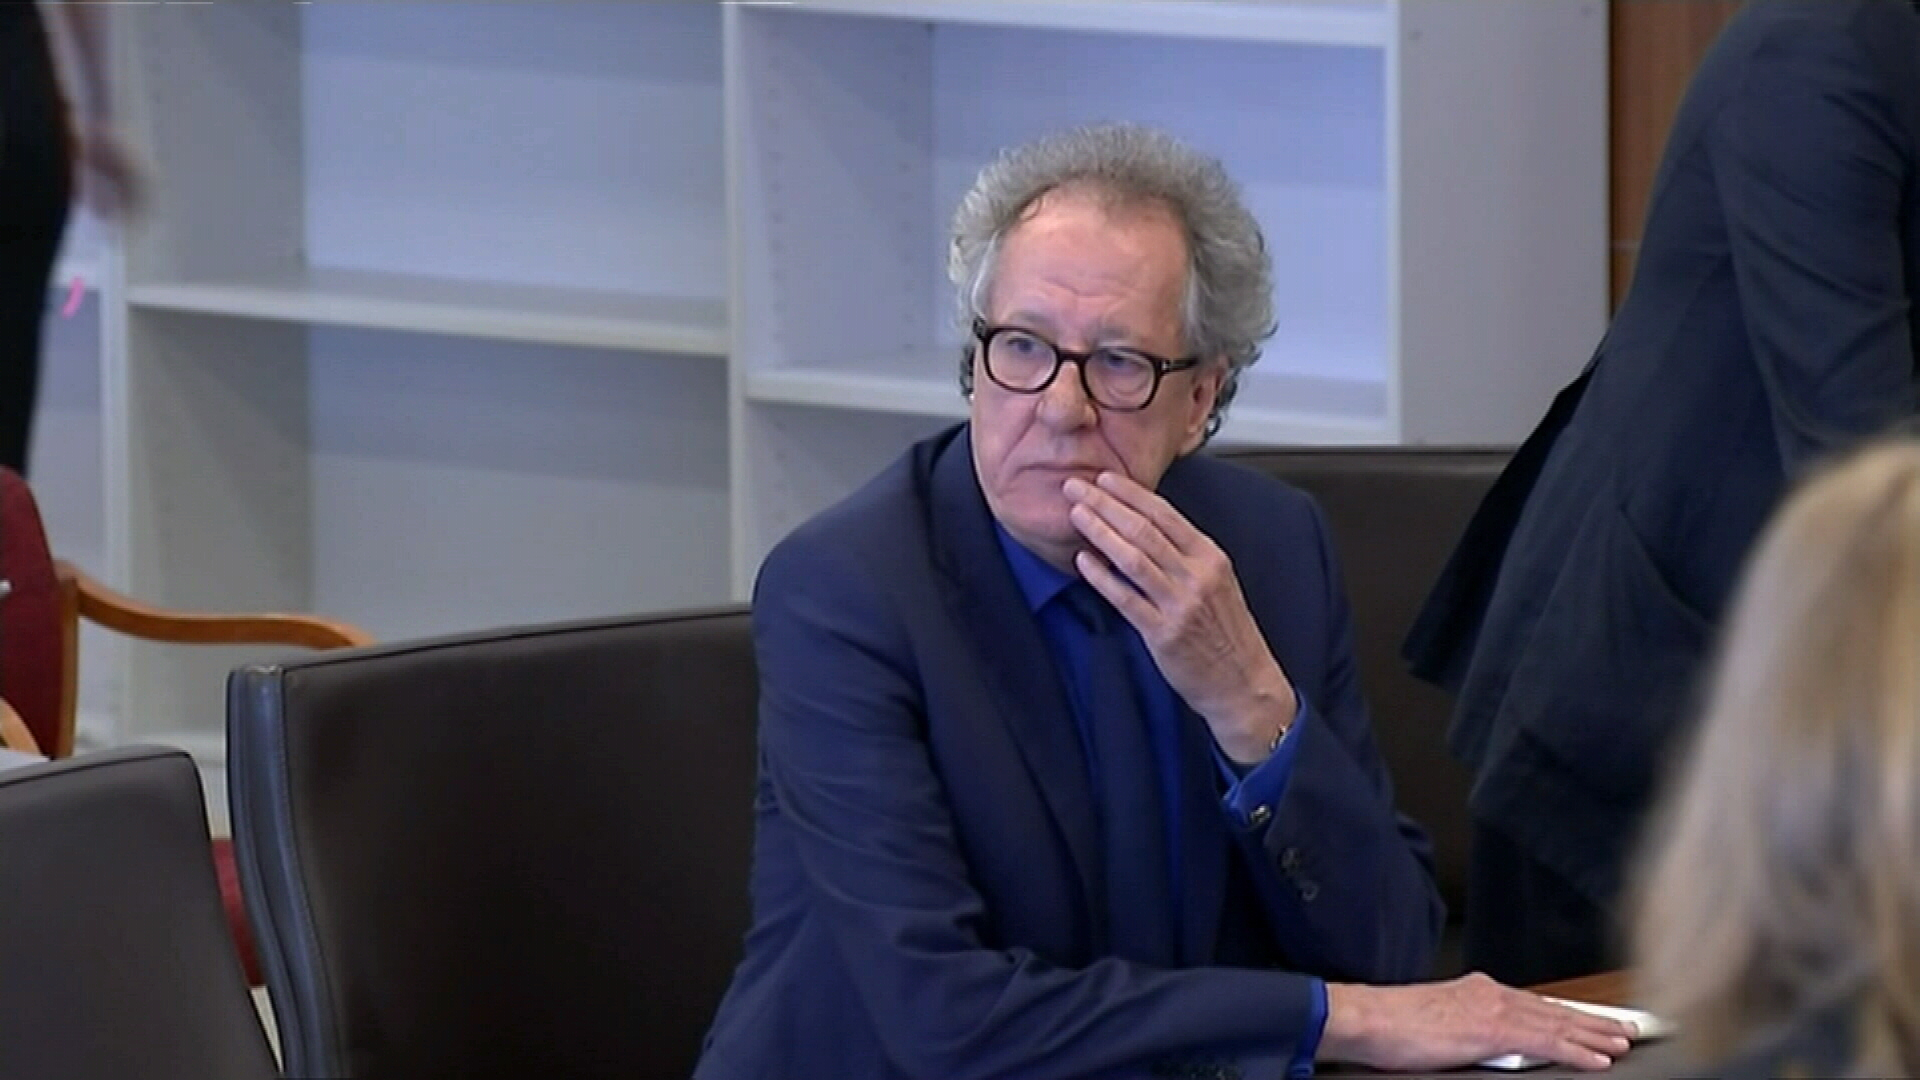 Geoffrey Rush in court for defamation trial